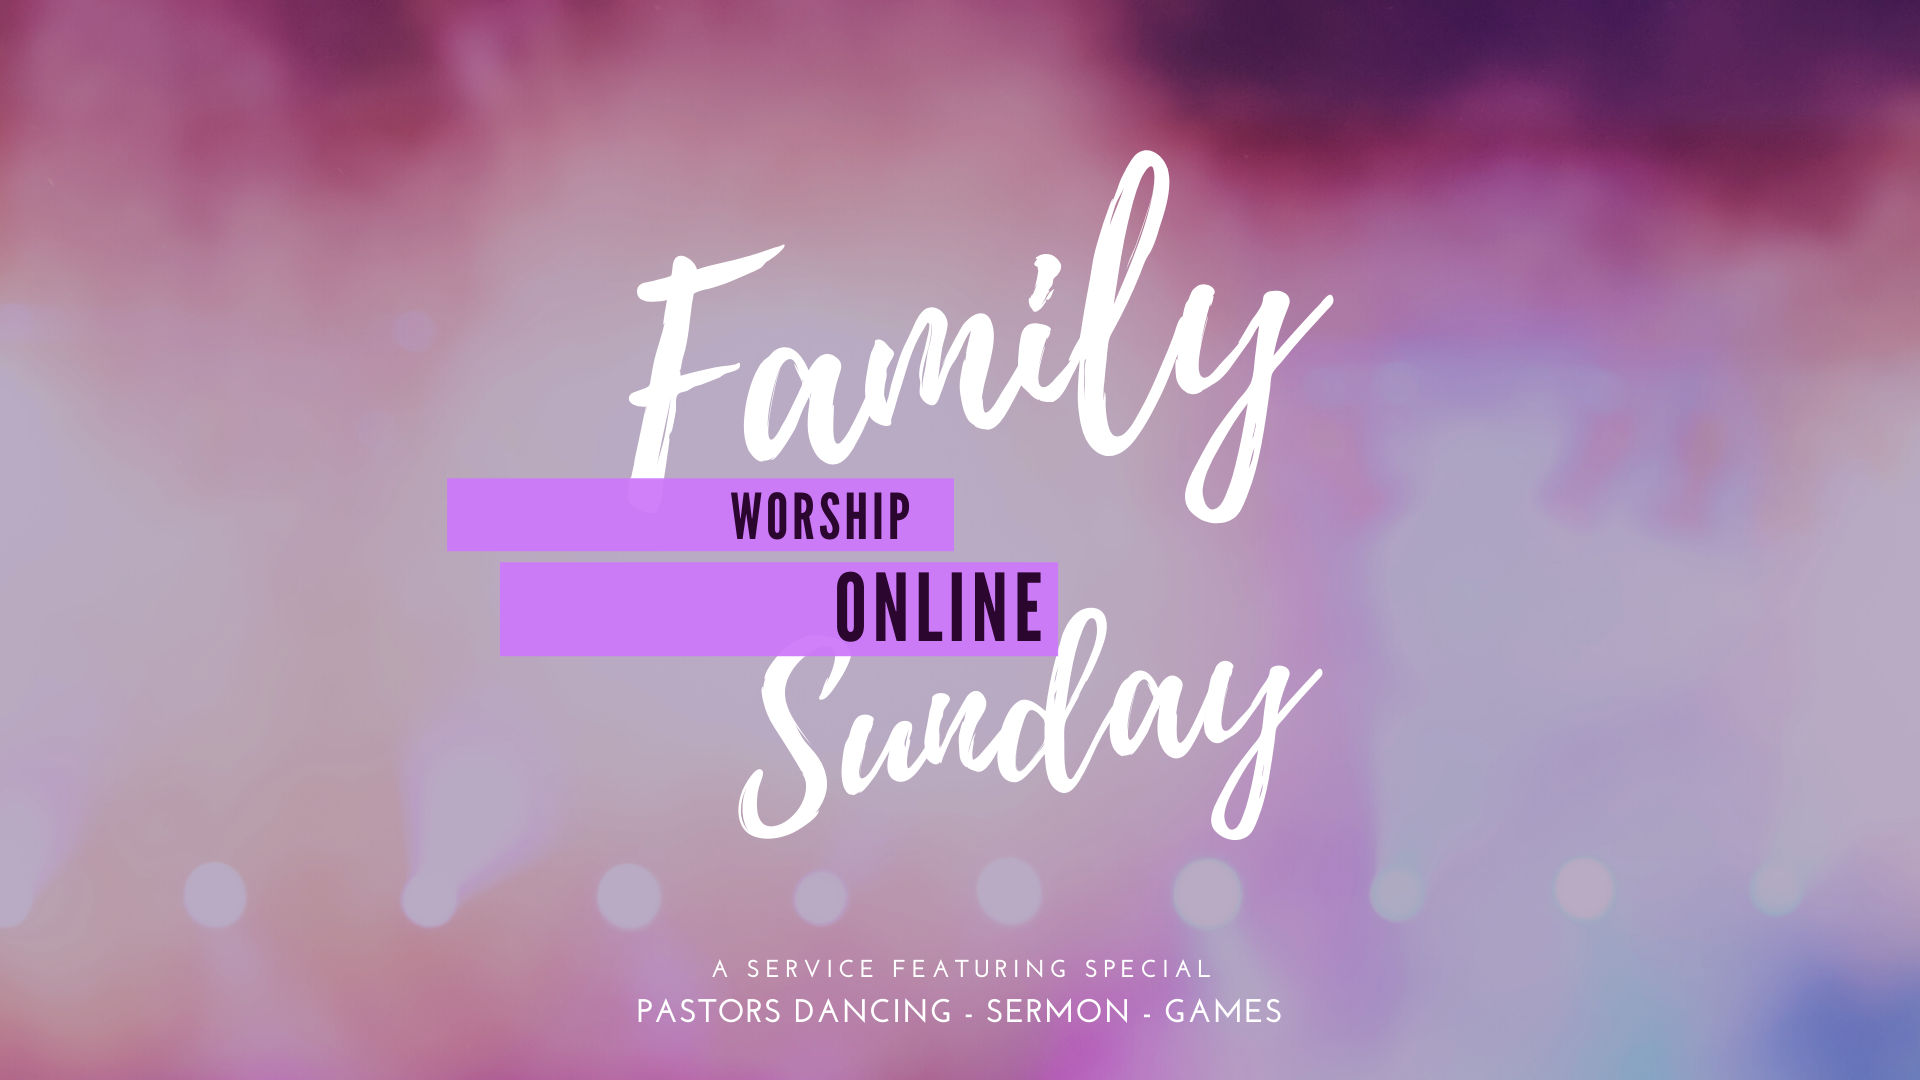 Family Worship EVENT